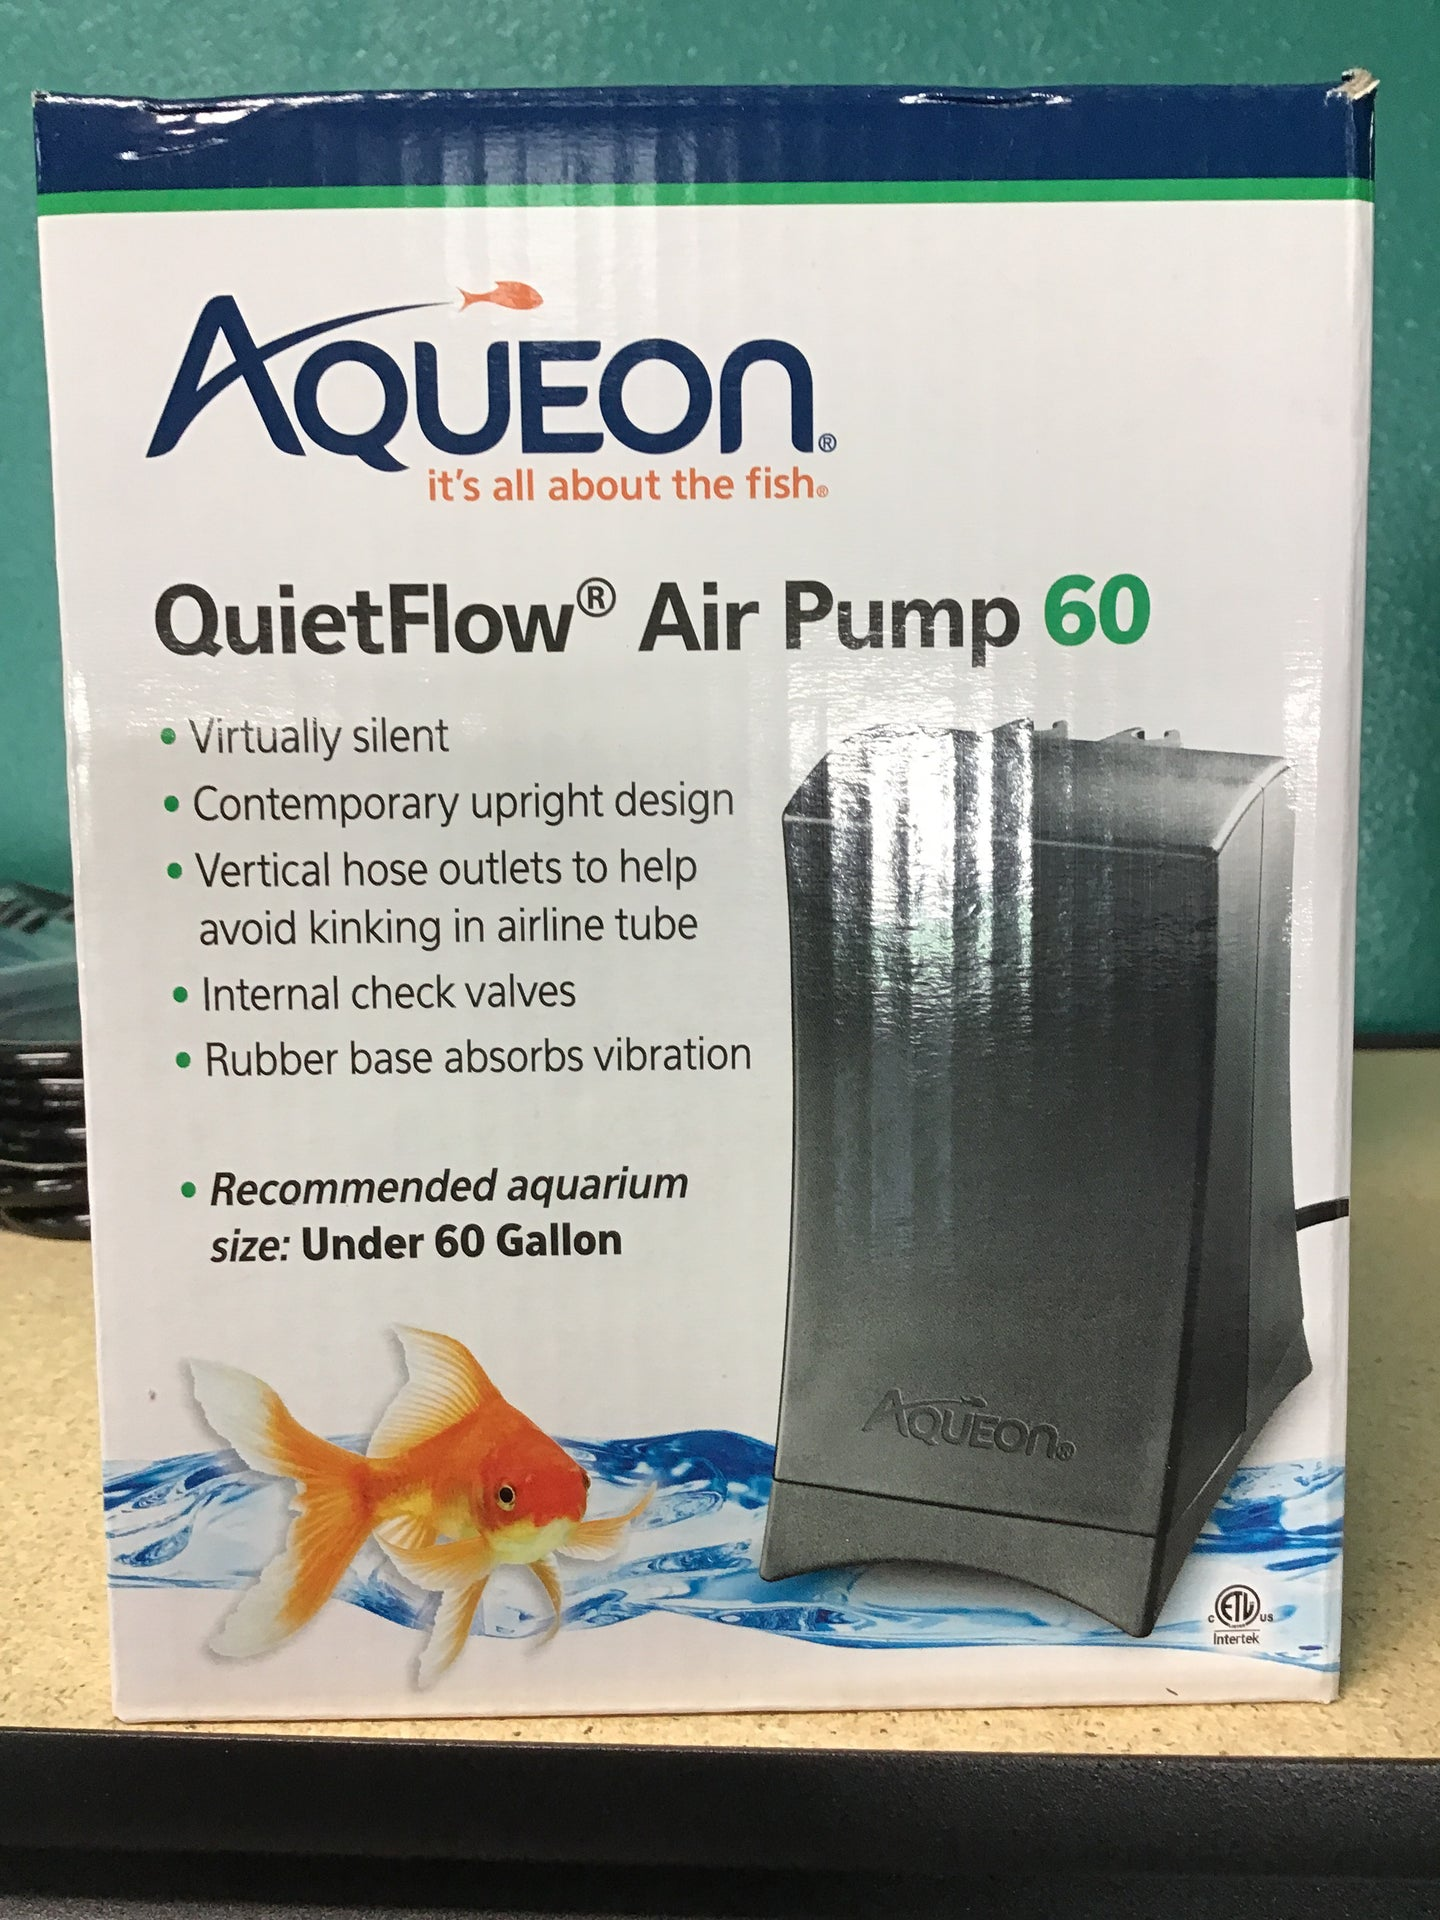 Aqueon quiet flow Air Pump 60